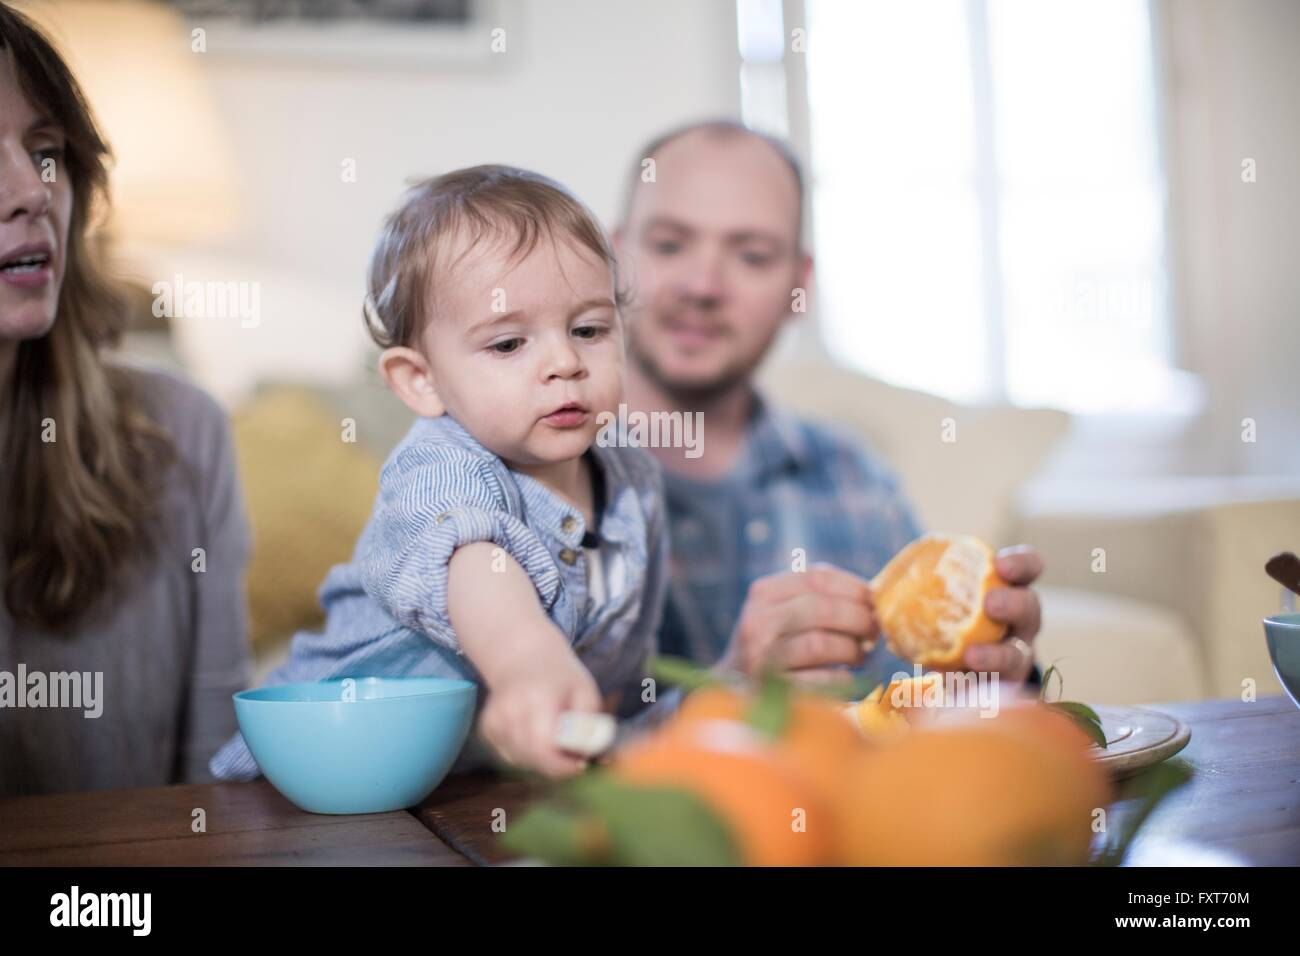 Parents having lunch with baby boy, peeling orange - Stock Image